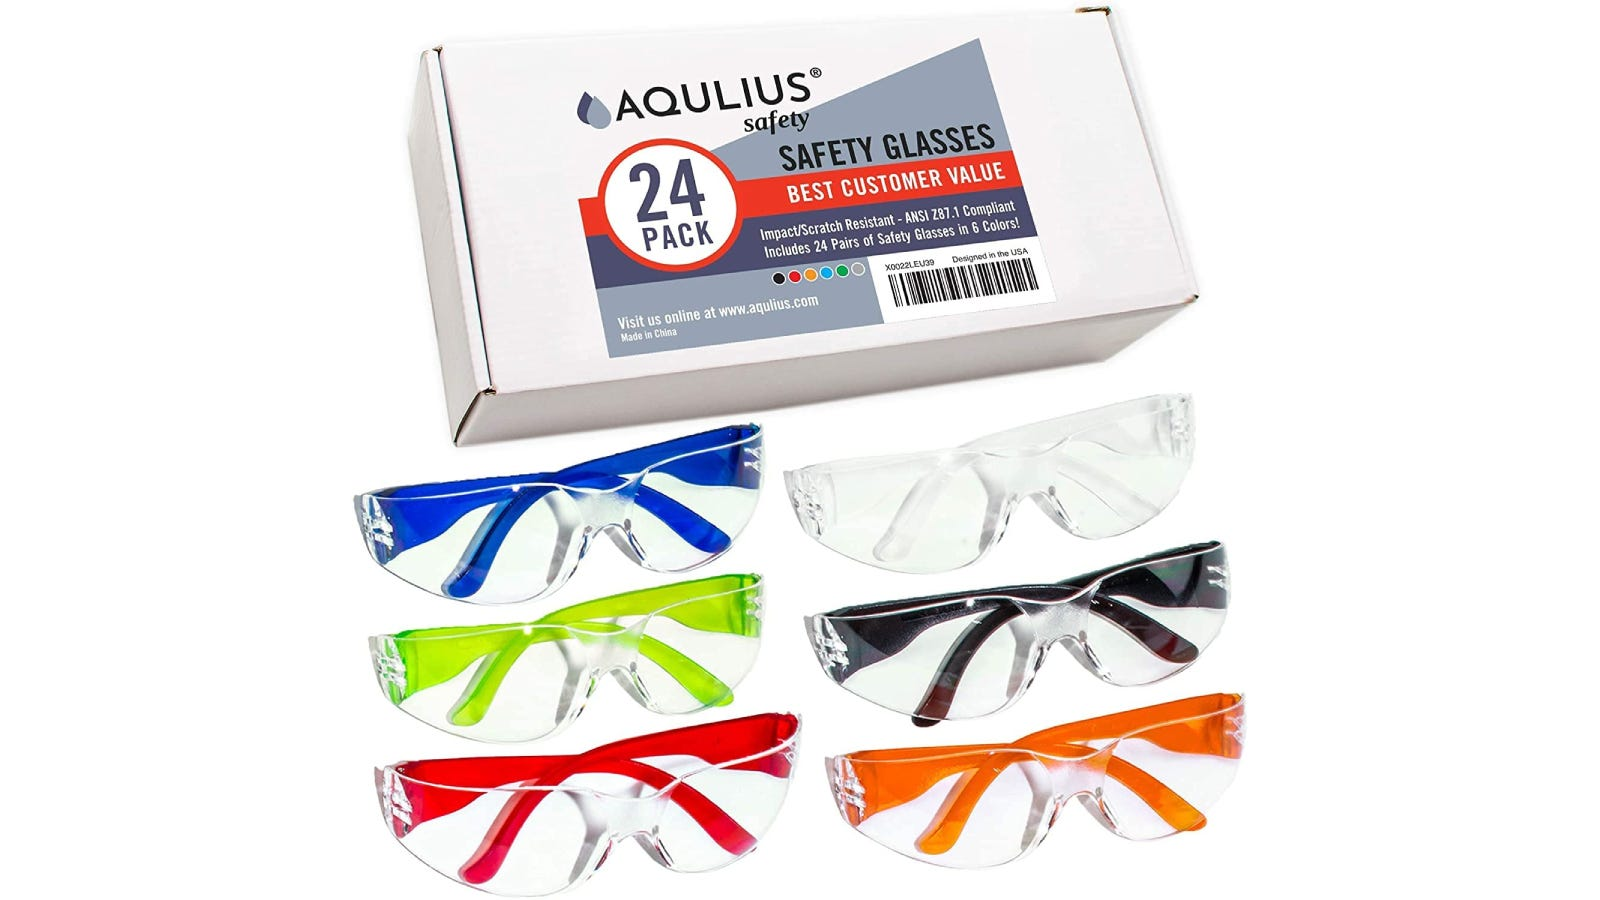 Six pairs of colorful safety glasses (one blue, one green, one red, one white, one black, and one orange) by a box